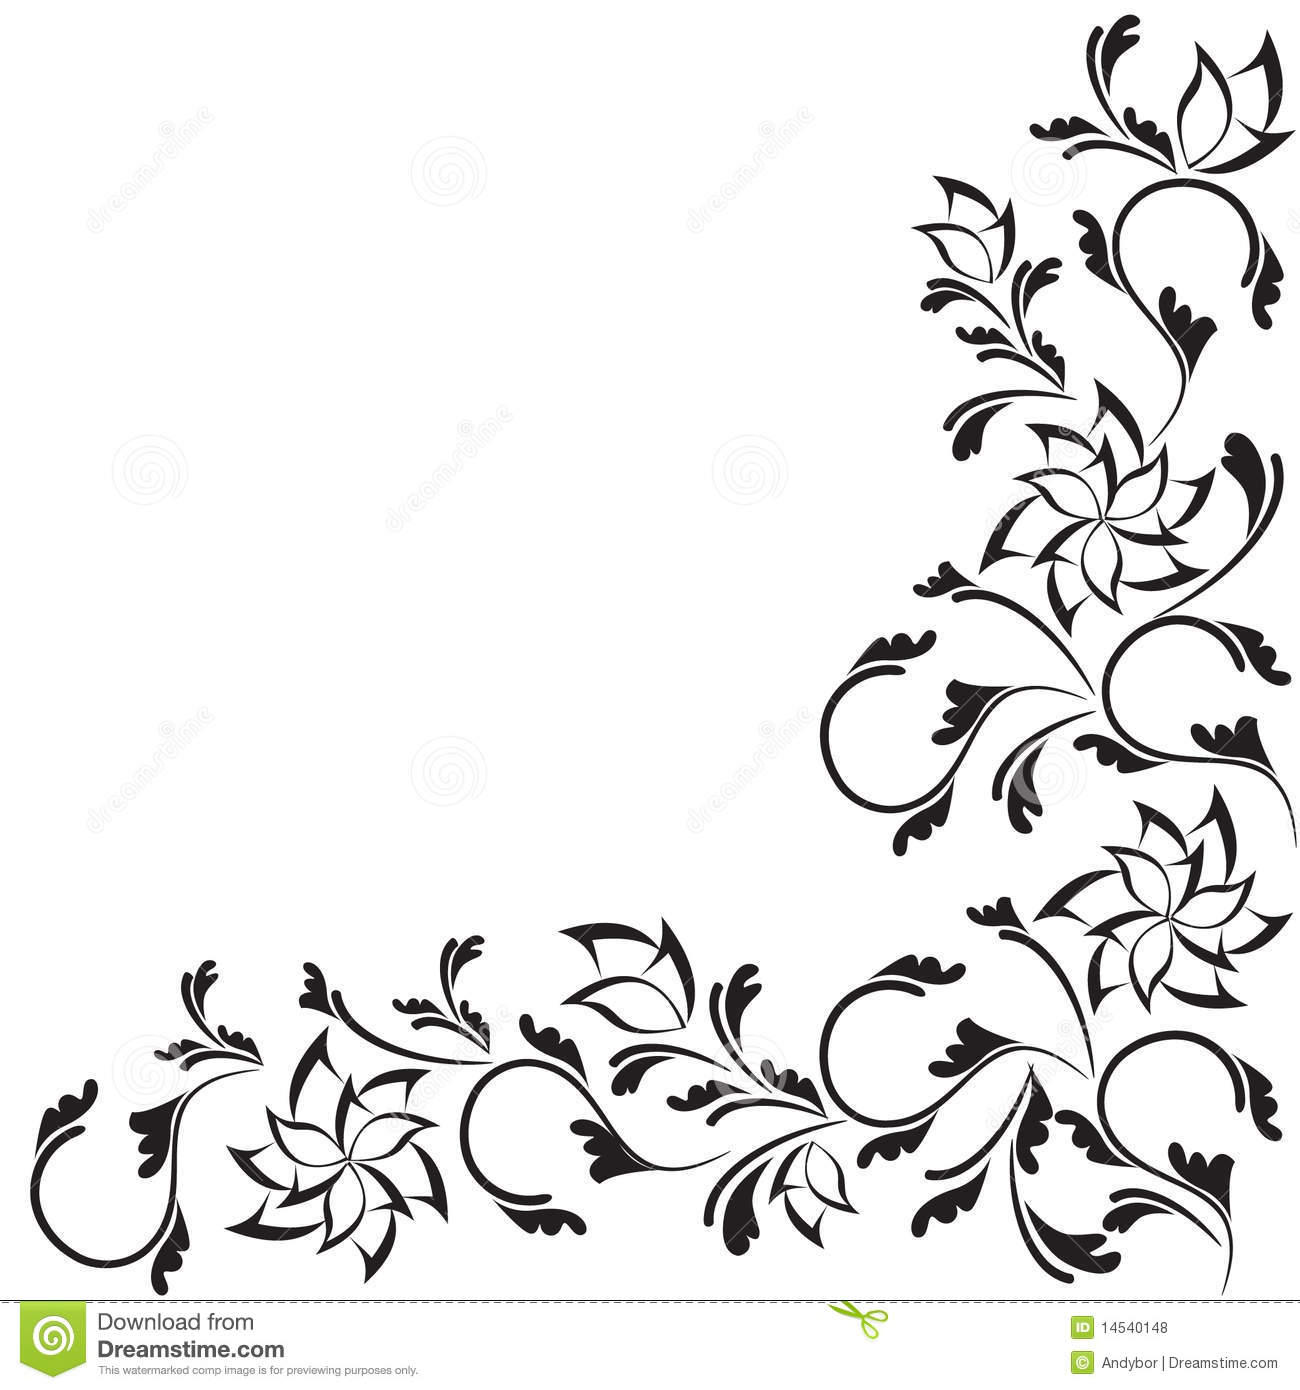 Black and White Floral Designs Patterns